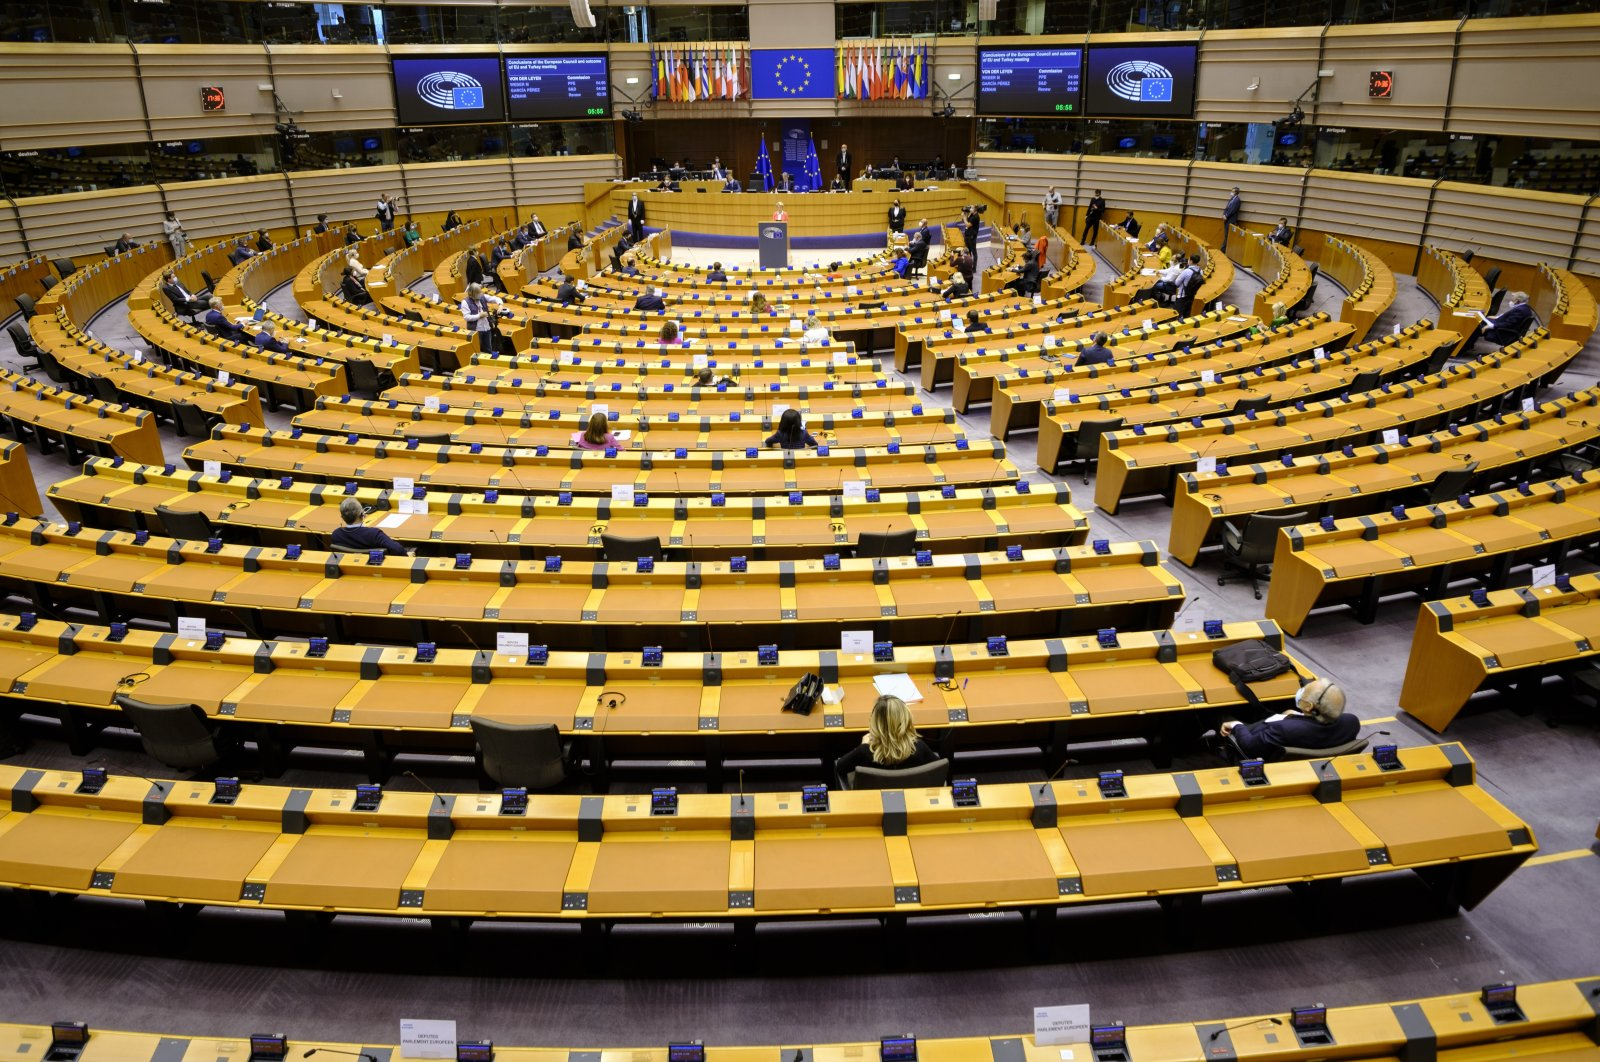 Lawmakers during a session of the European Parliament in Brussels, Belgium, April 26, 2021. (Photo by Getty Images)